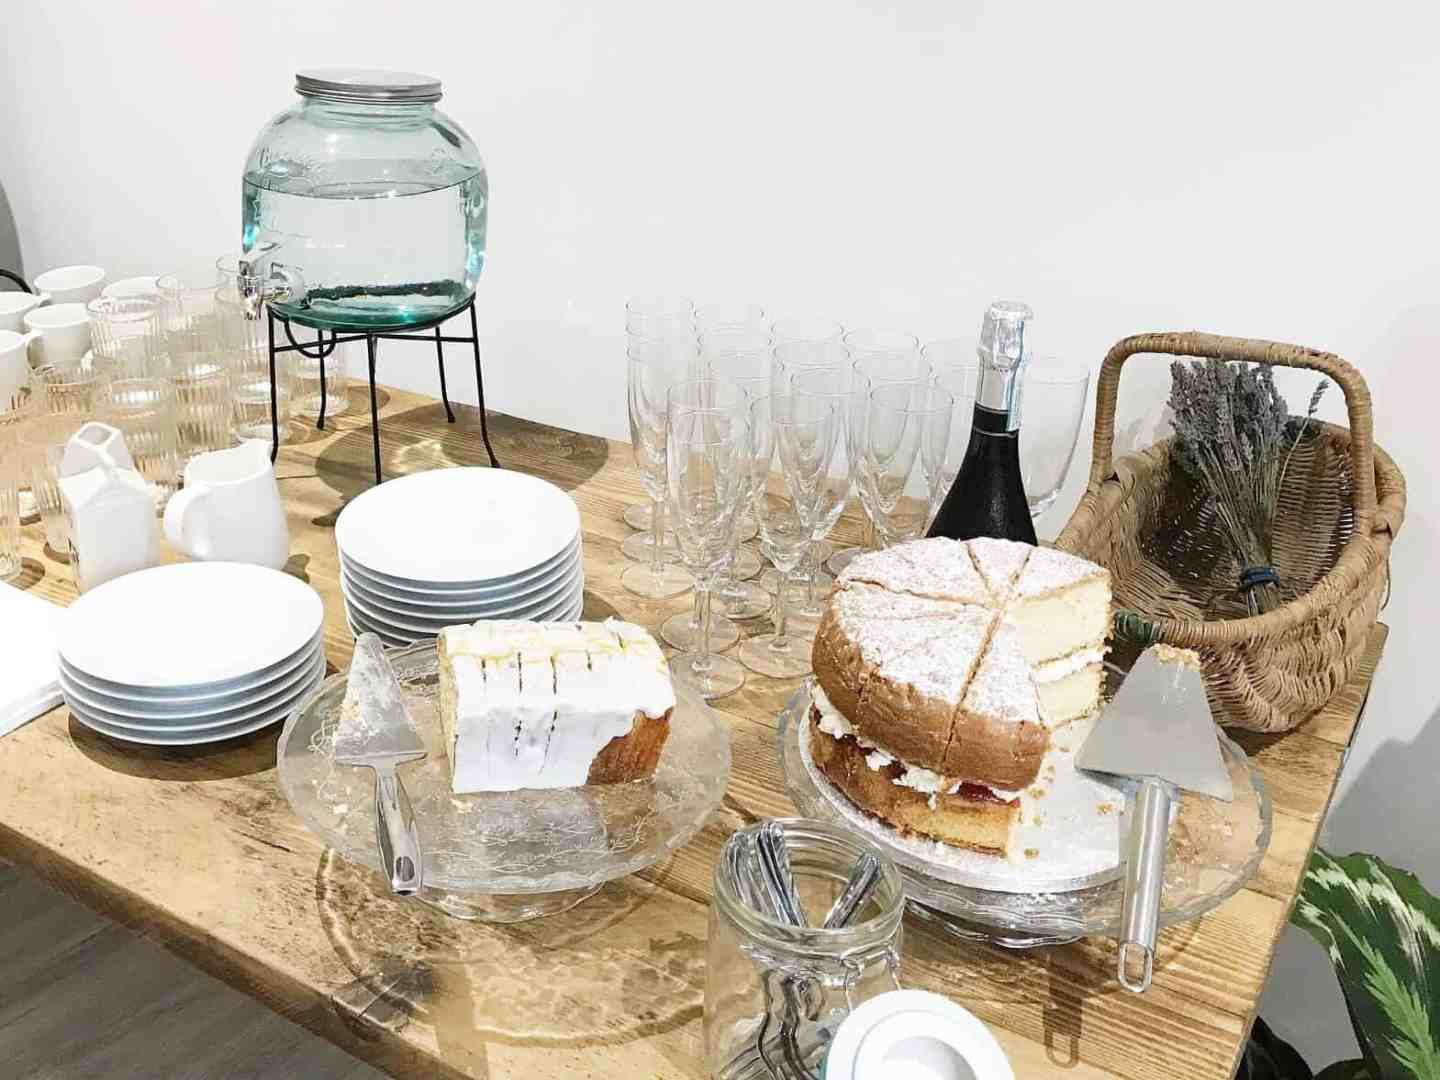 Home made cakes and bubbles at Workshop & Play